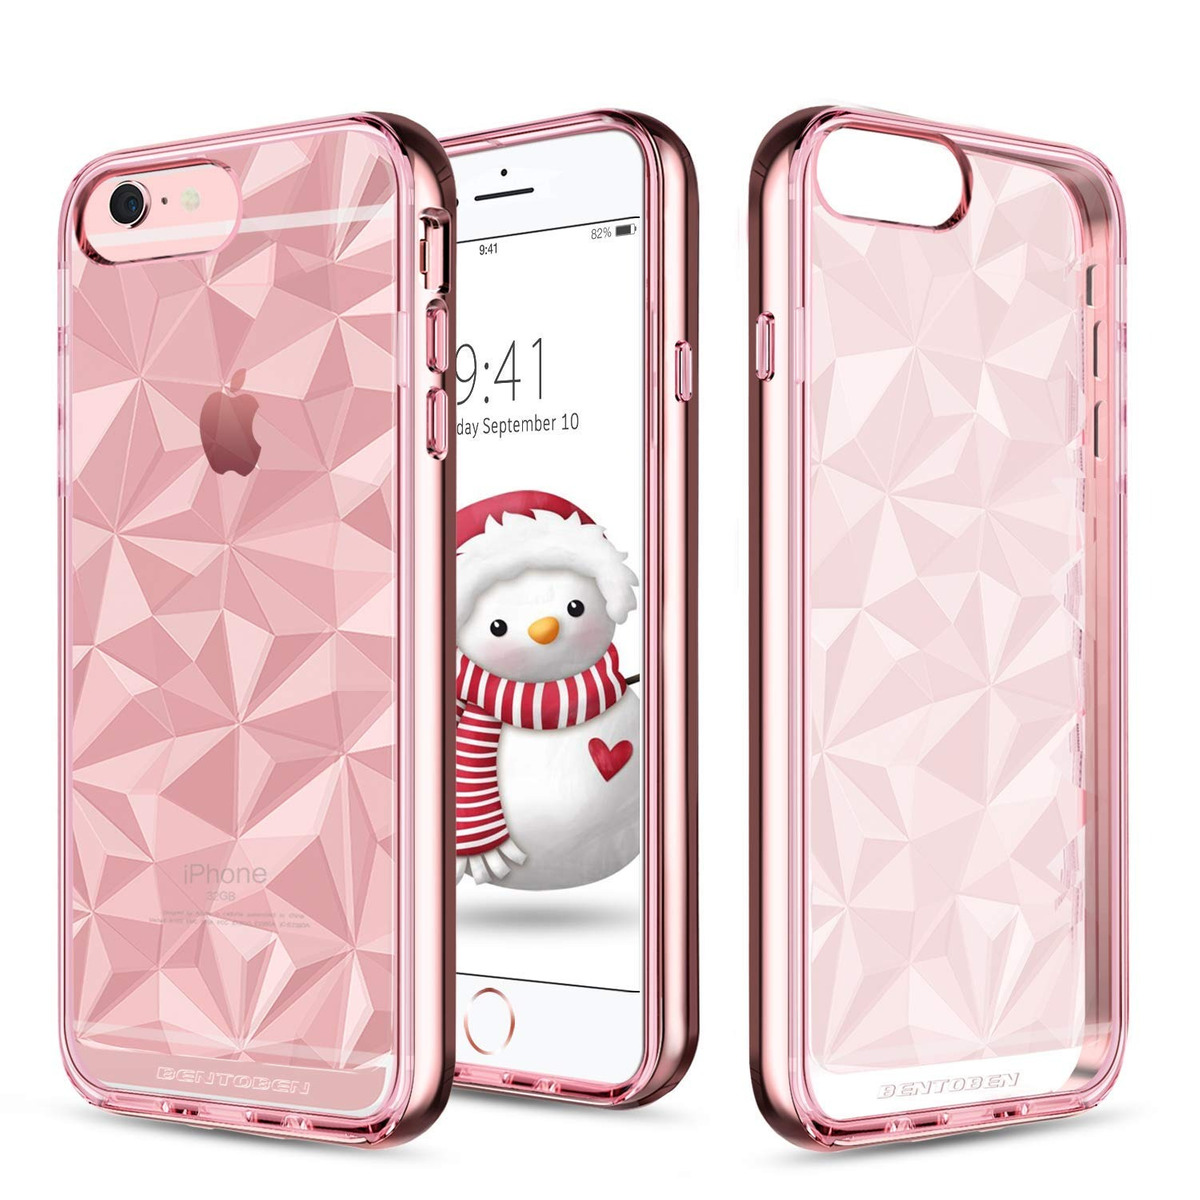 0d653d974d4 bentoben iphone 6-plus funda,diamond prism crystal clear 2 i. Cargando zoom.